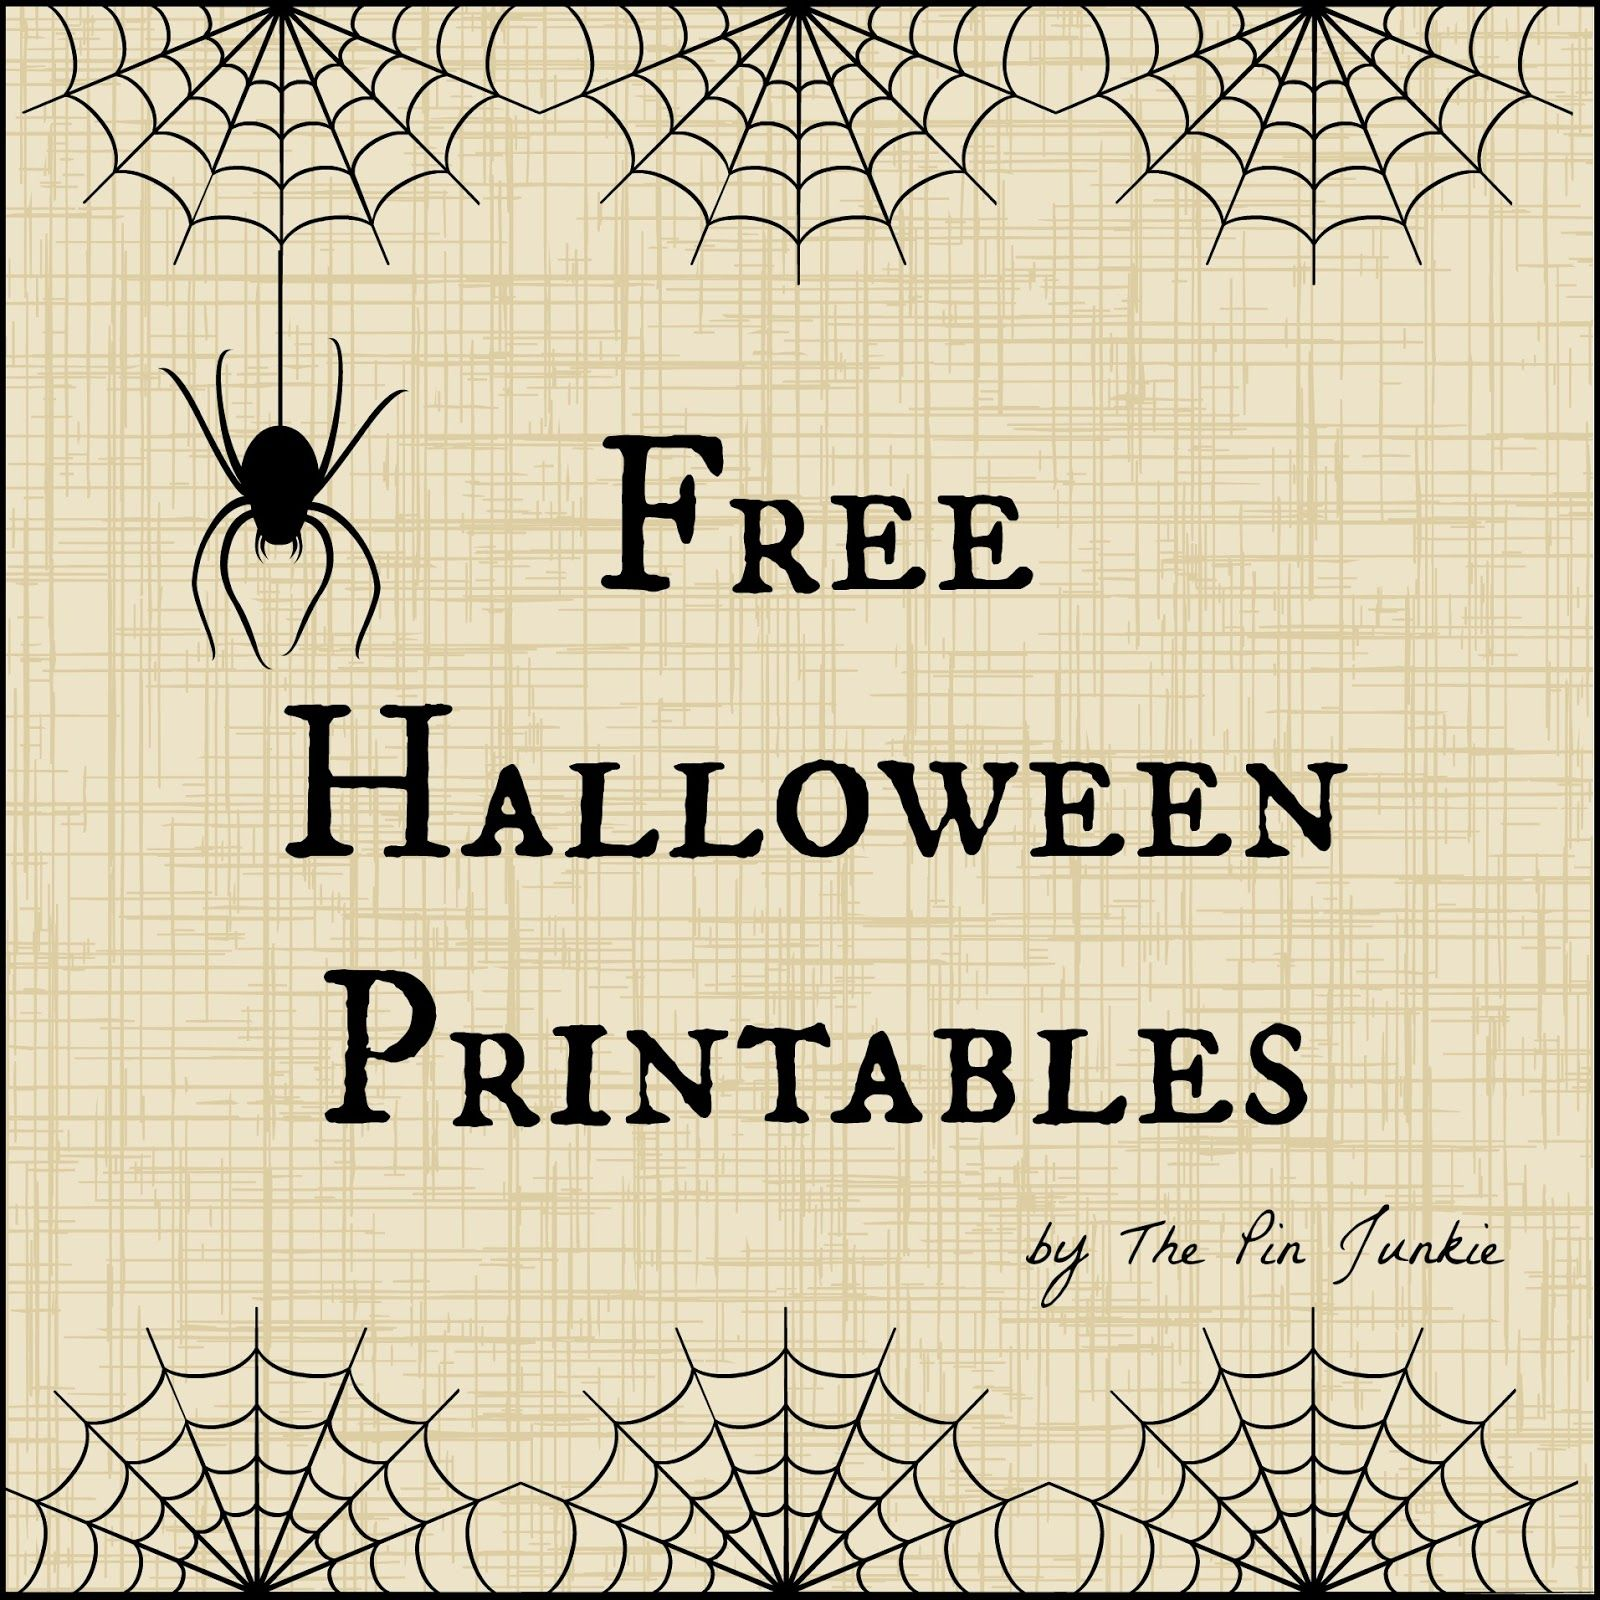 Free halloween printables free halloween printables printables free halloween printables negle Image collections